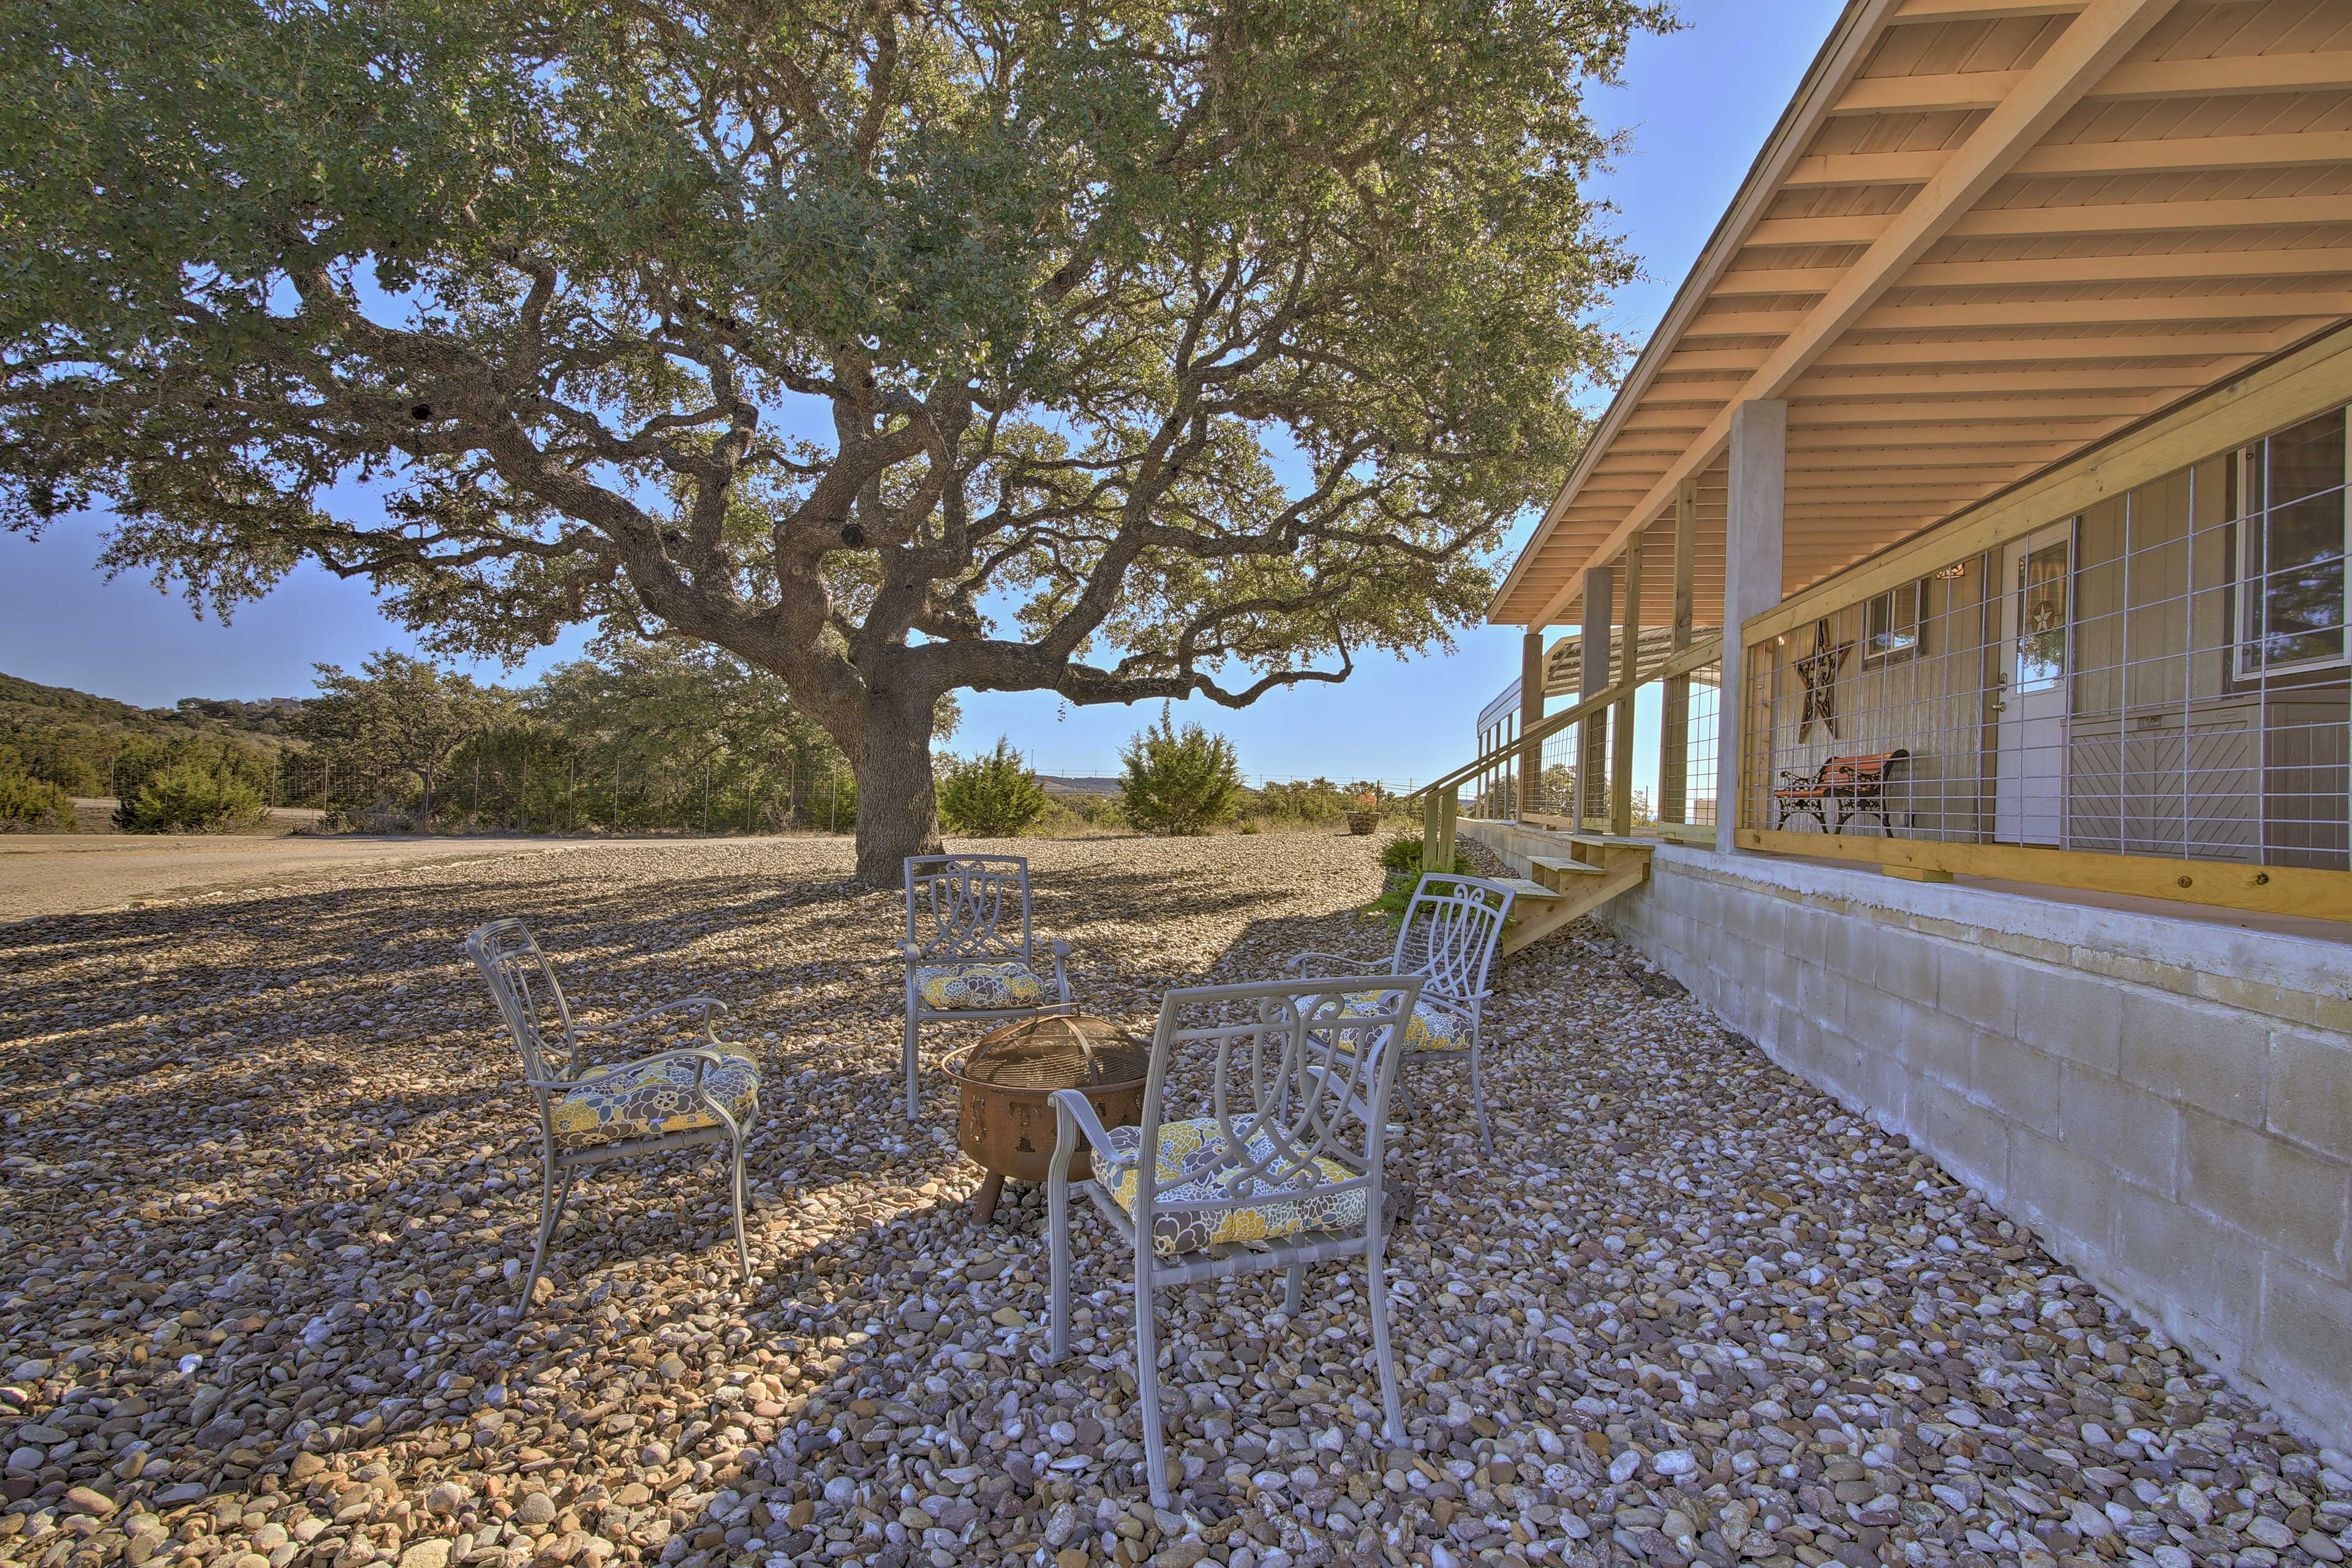 Sit around the fire pit and watch the sunset over the Texas plains!